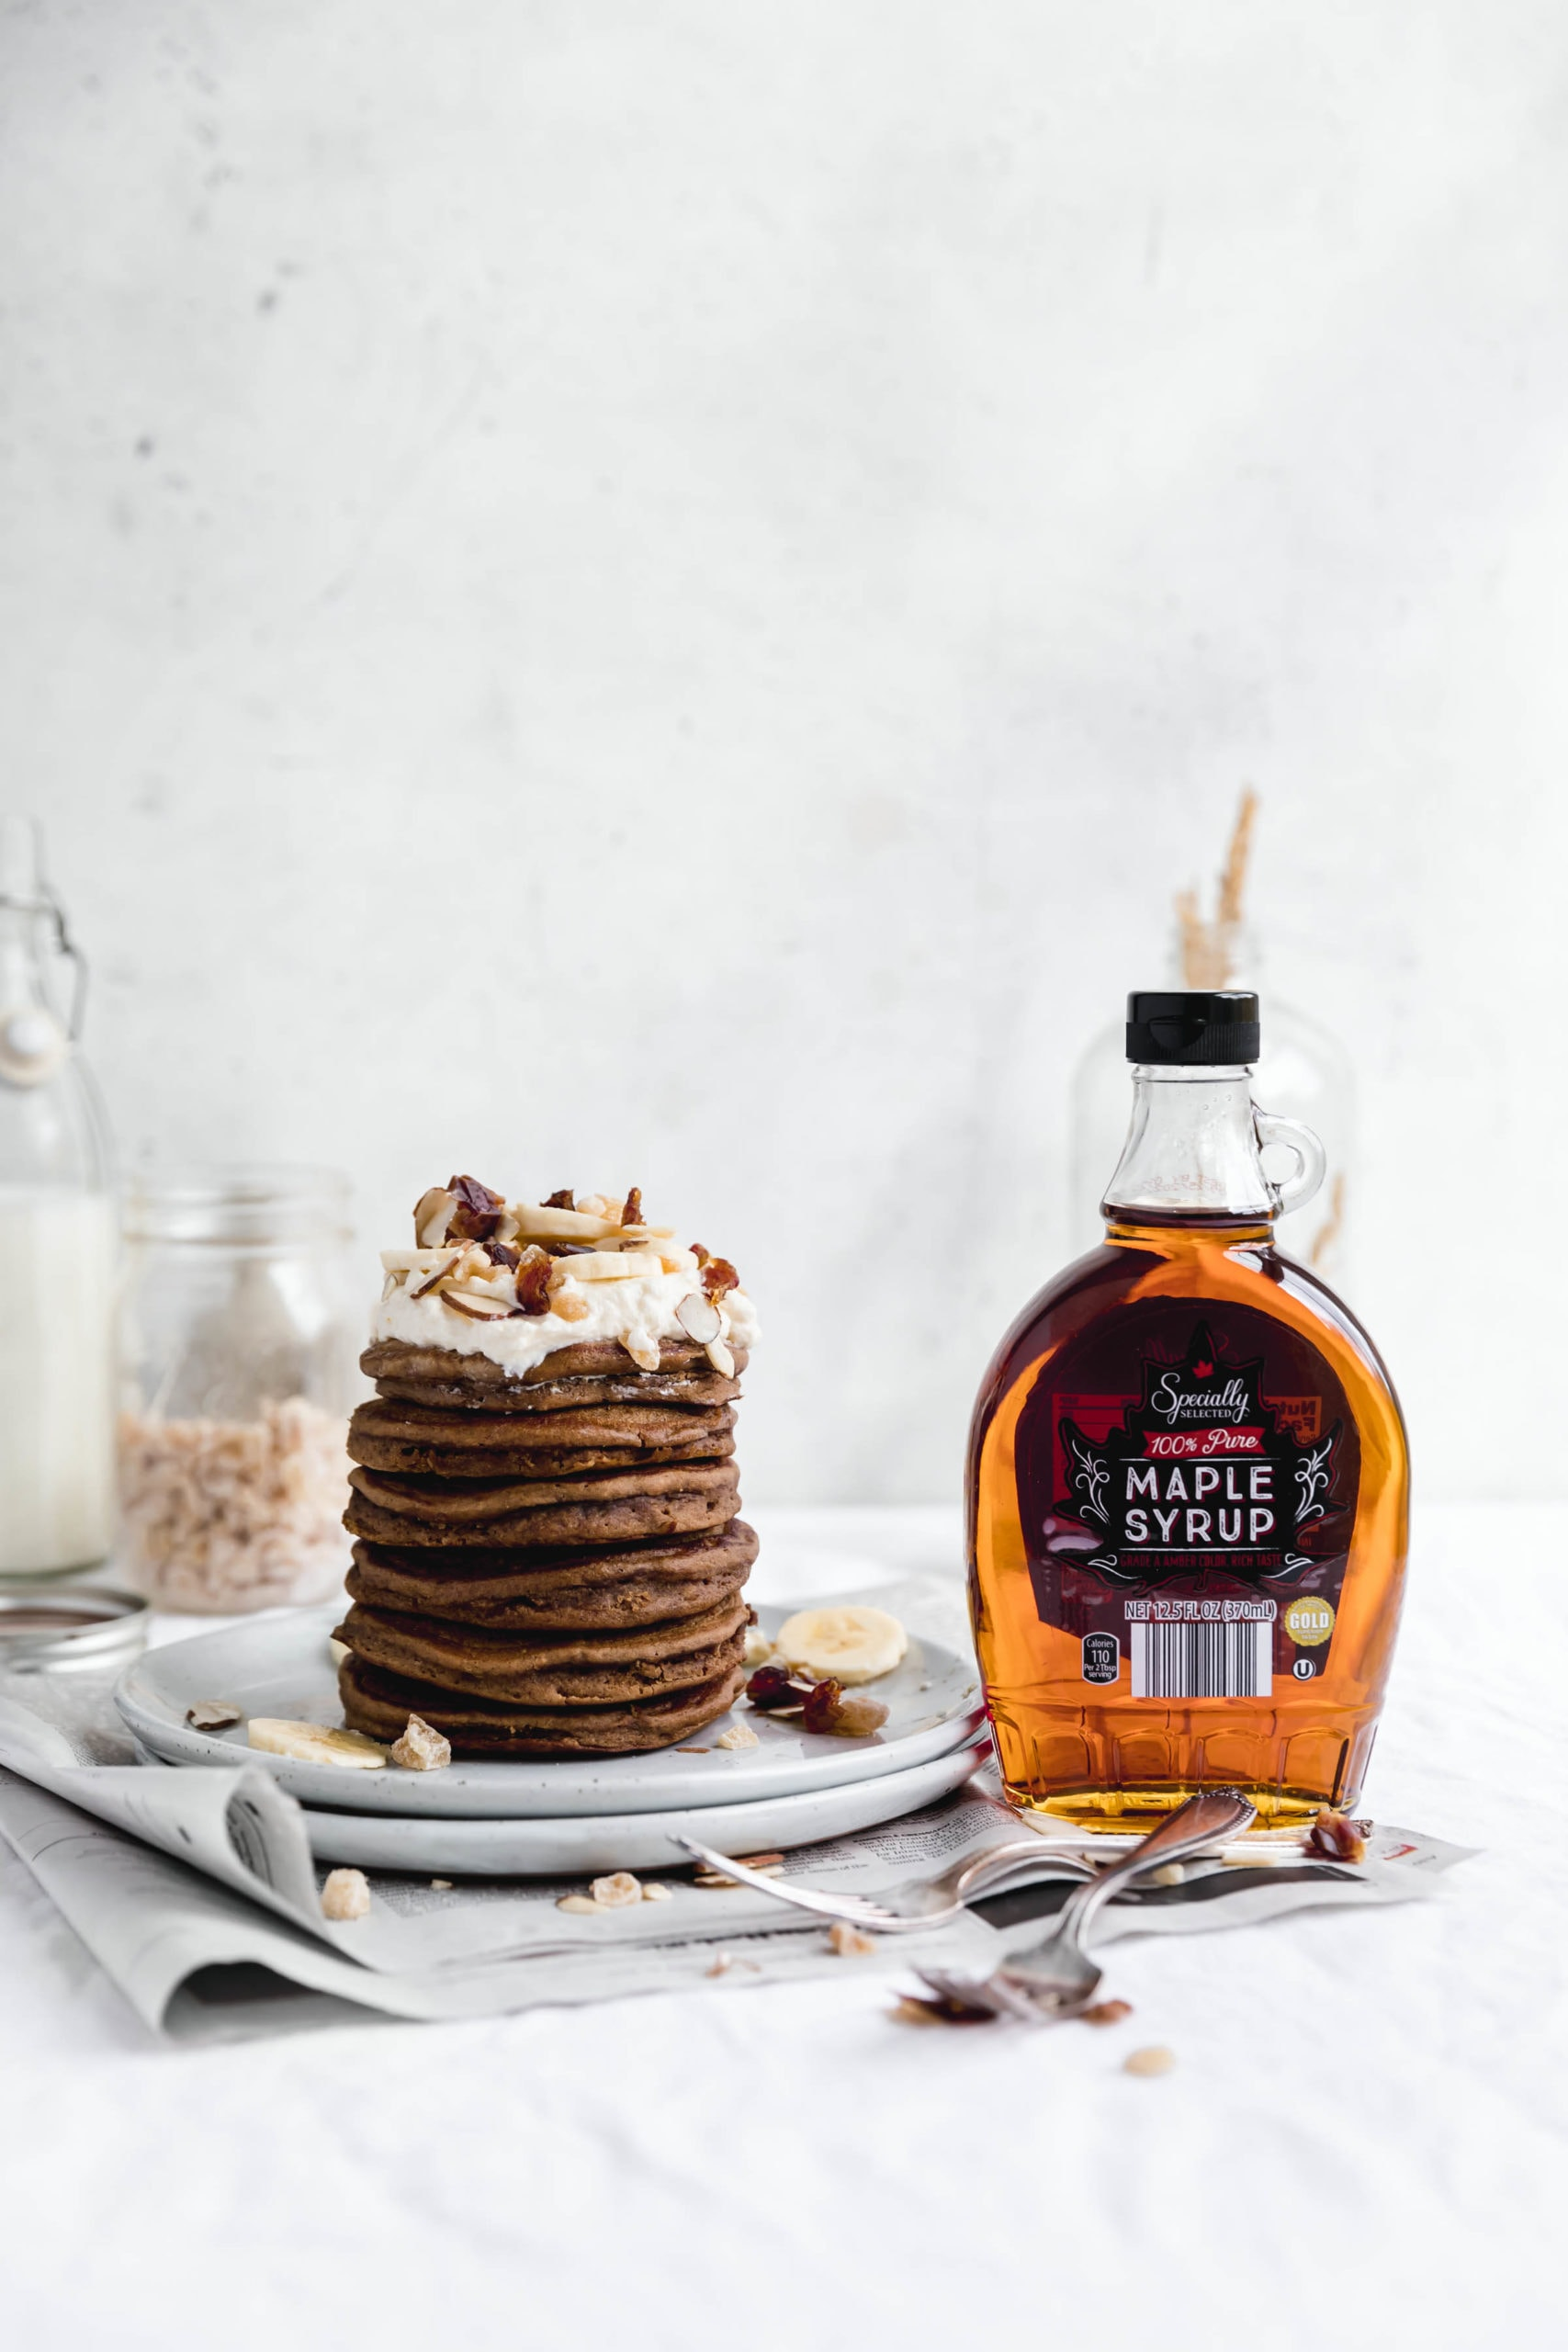 Start your Christmas morning off right with a fat stack of these fluffy gingerbread pancakes. Topped with a healthy pour of maple syrup, these pancakes are perfect for the holidays!